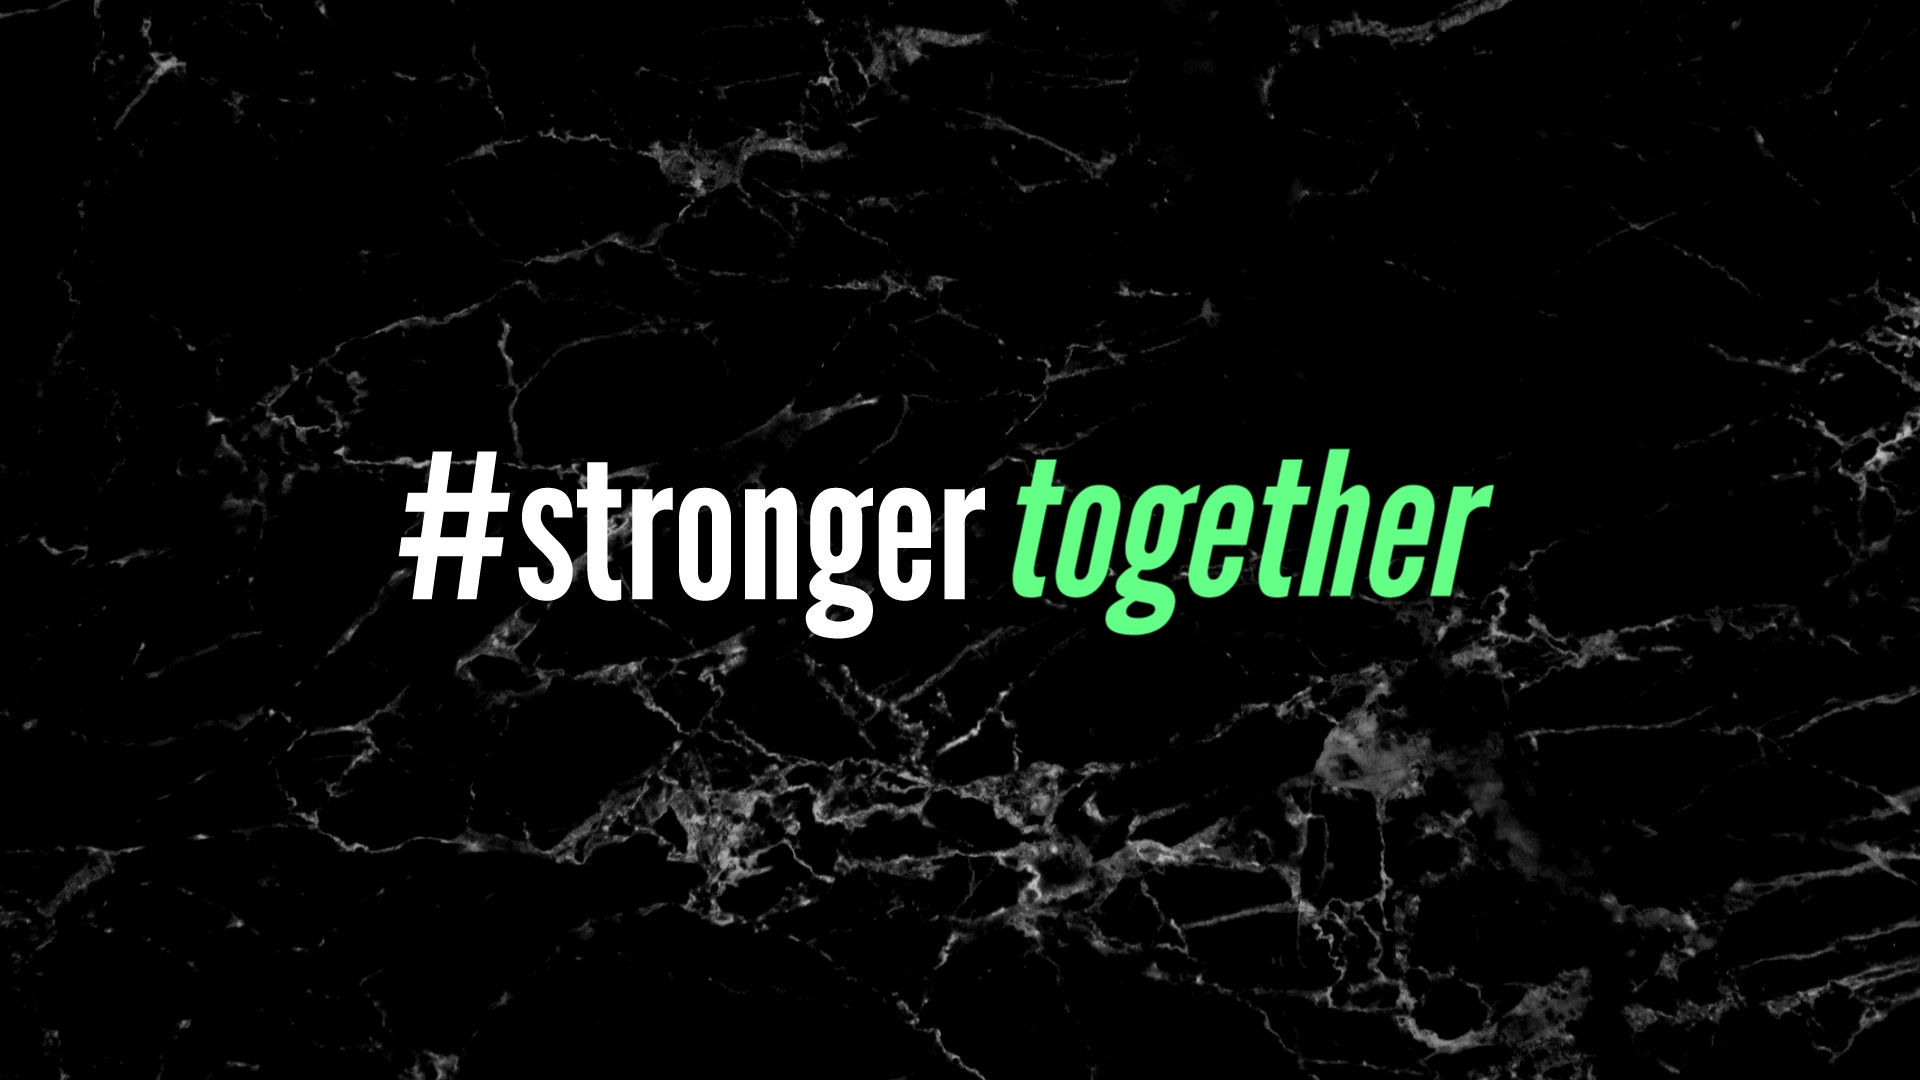 Stronger Together 2021 Vision